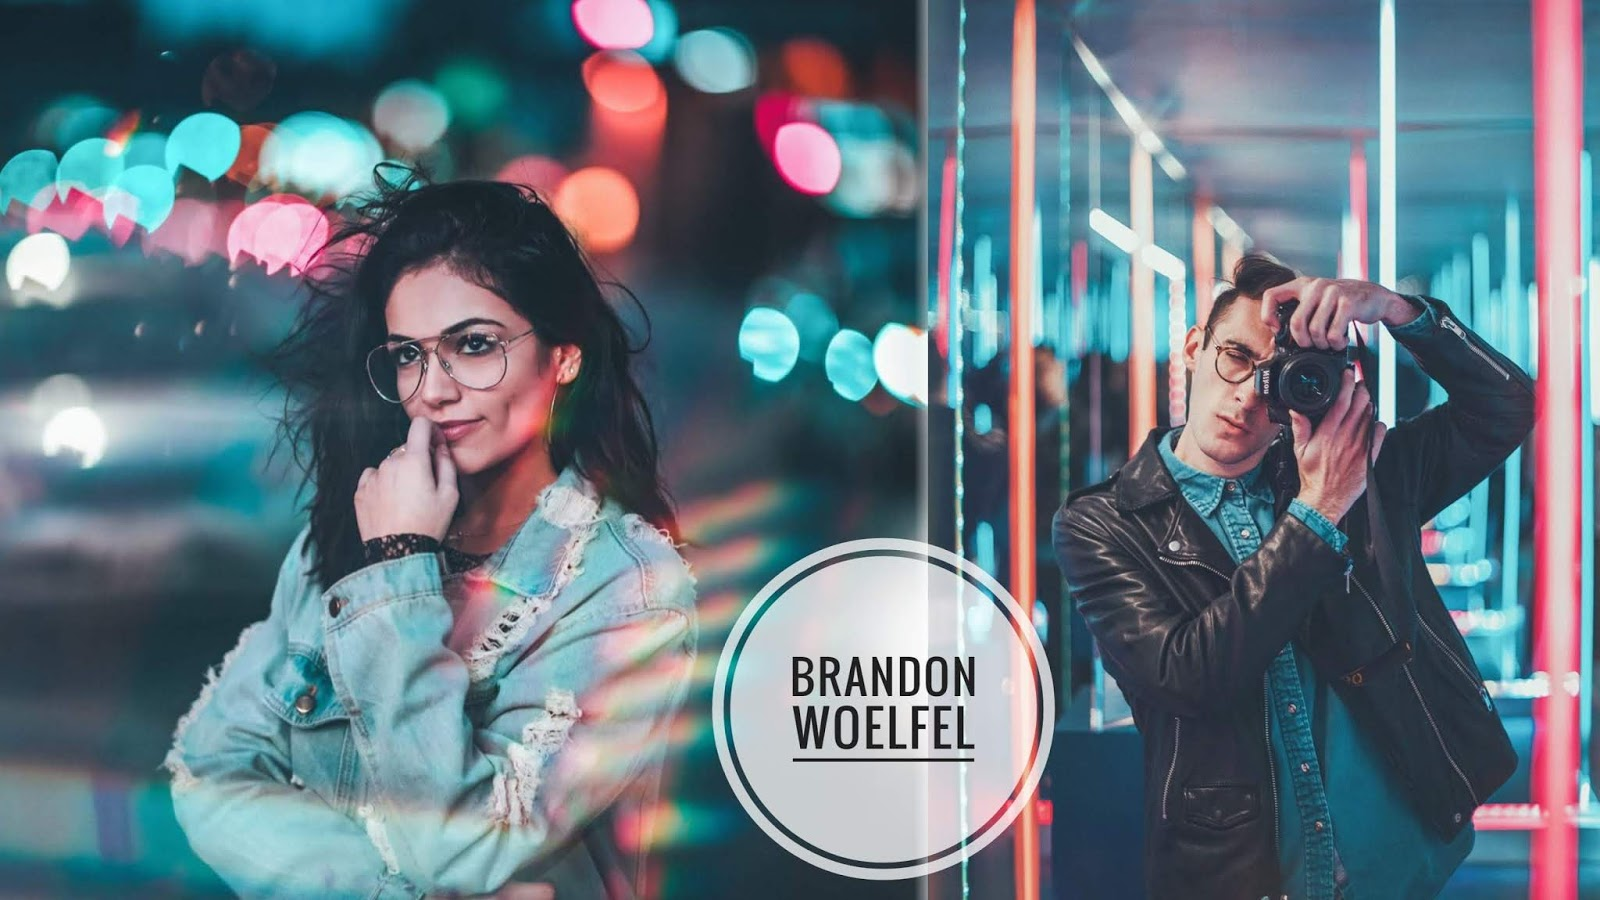 brandon woelfel lightroom preset free download